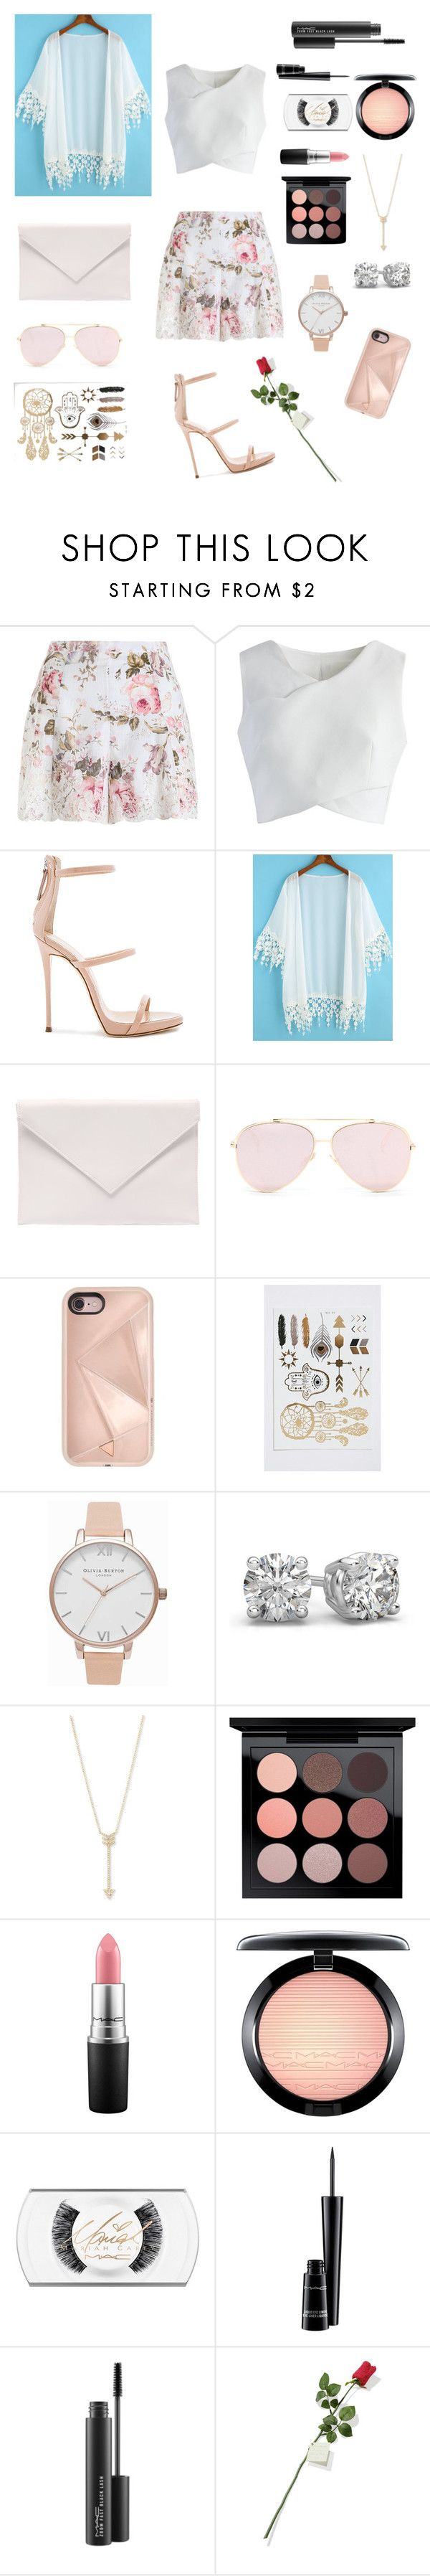 """Untitled #250"" by natalyholly on Polyvore featuring Zimmermann, Chicwish, Giuseppe Zanotti, Verali, Rebecca Minkoff, Olivia Burton, EF Collection, MAC Cosmetics and Hanky Panky"